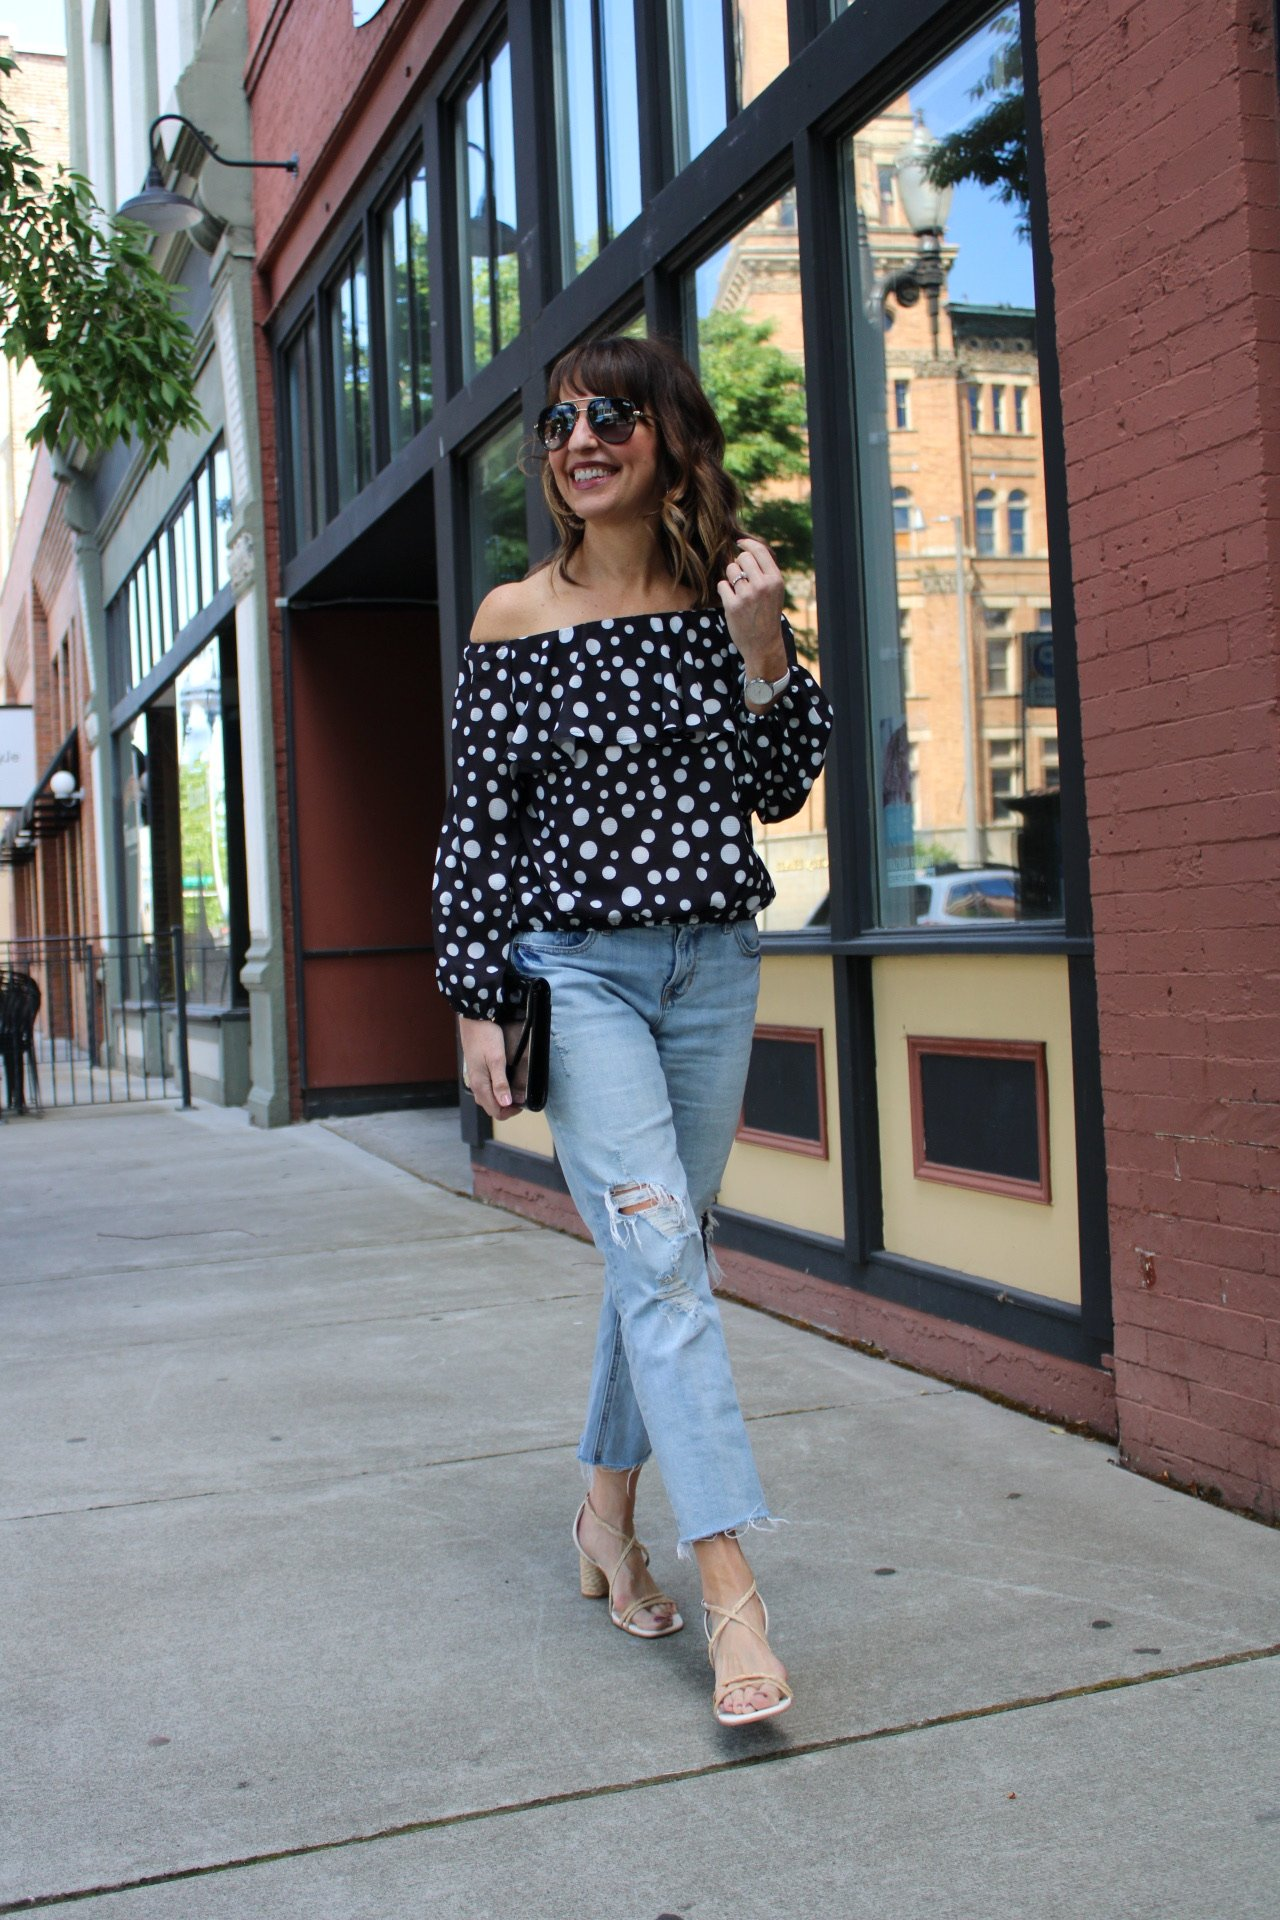 polka dot off the shoulder top with lightwash distressed jeans and beige sandals